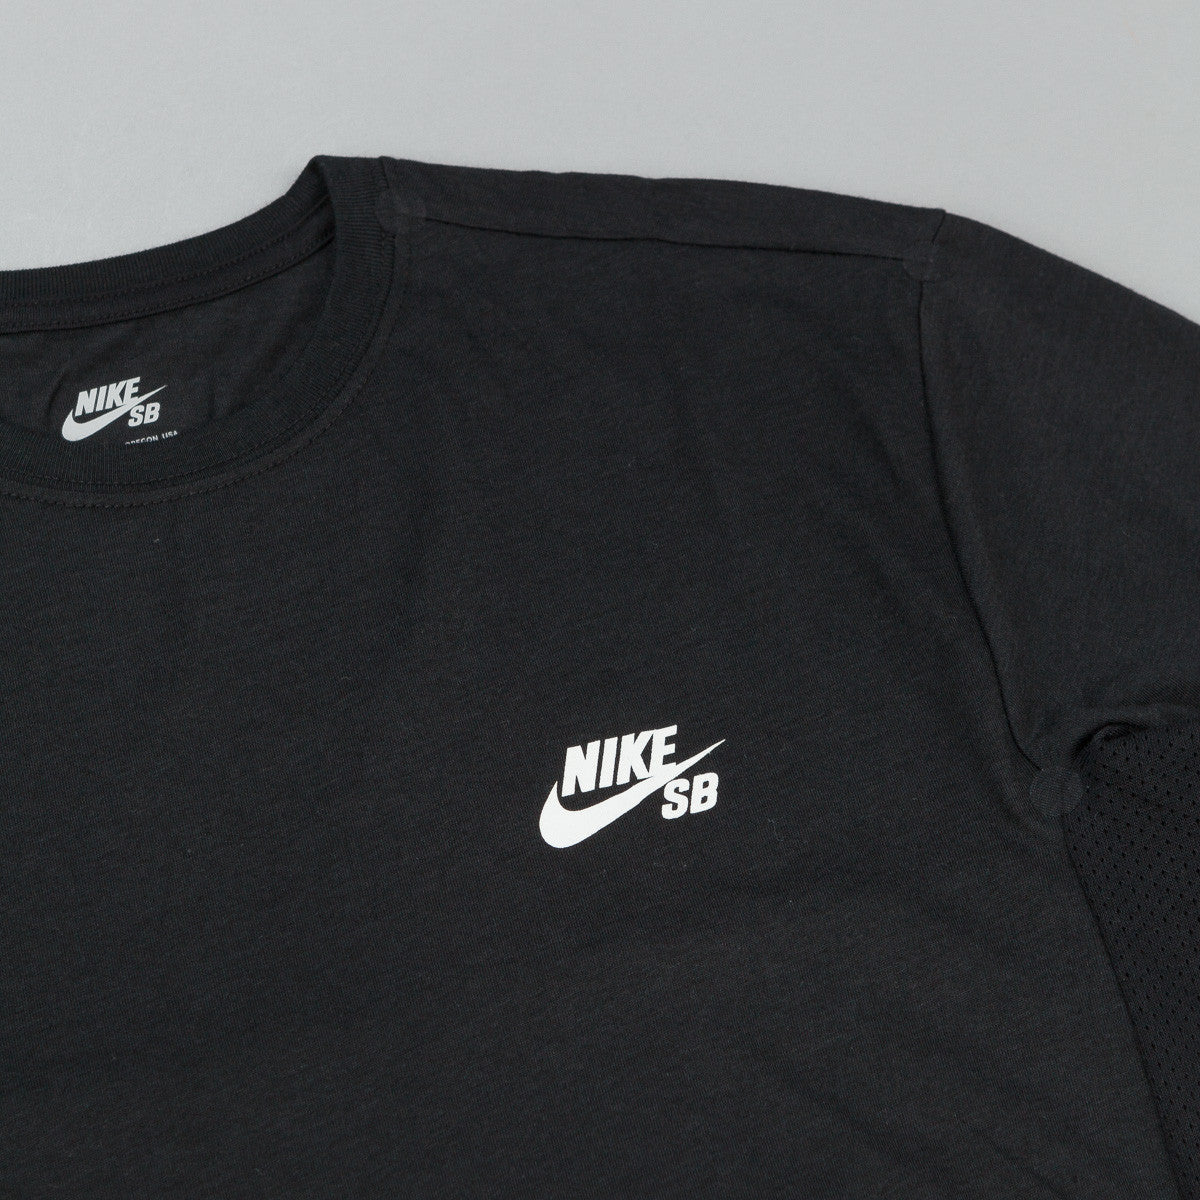 Nike SB Dri-Fit Skyline Cool G T-Shirt - Black / White